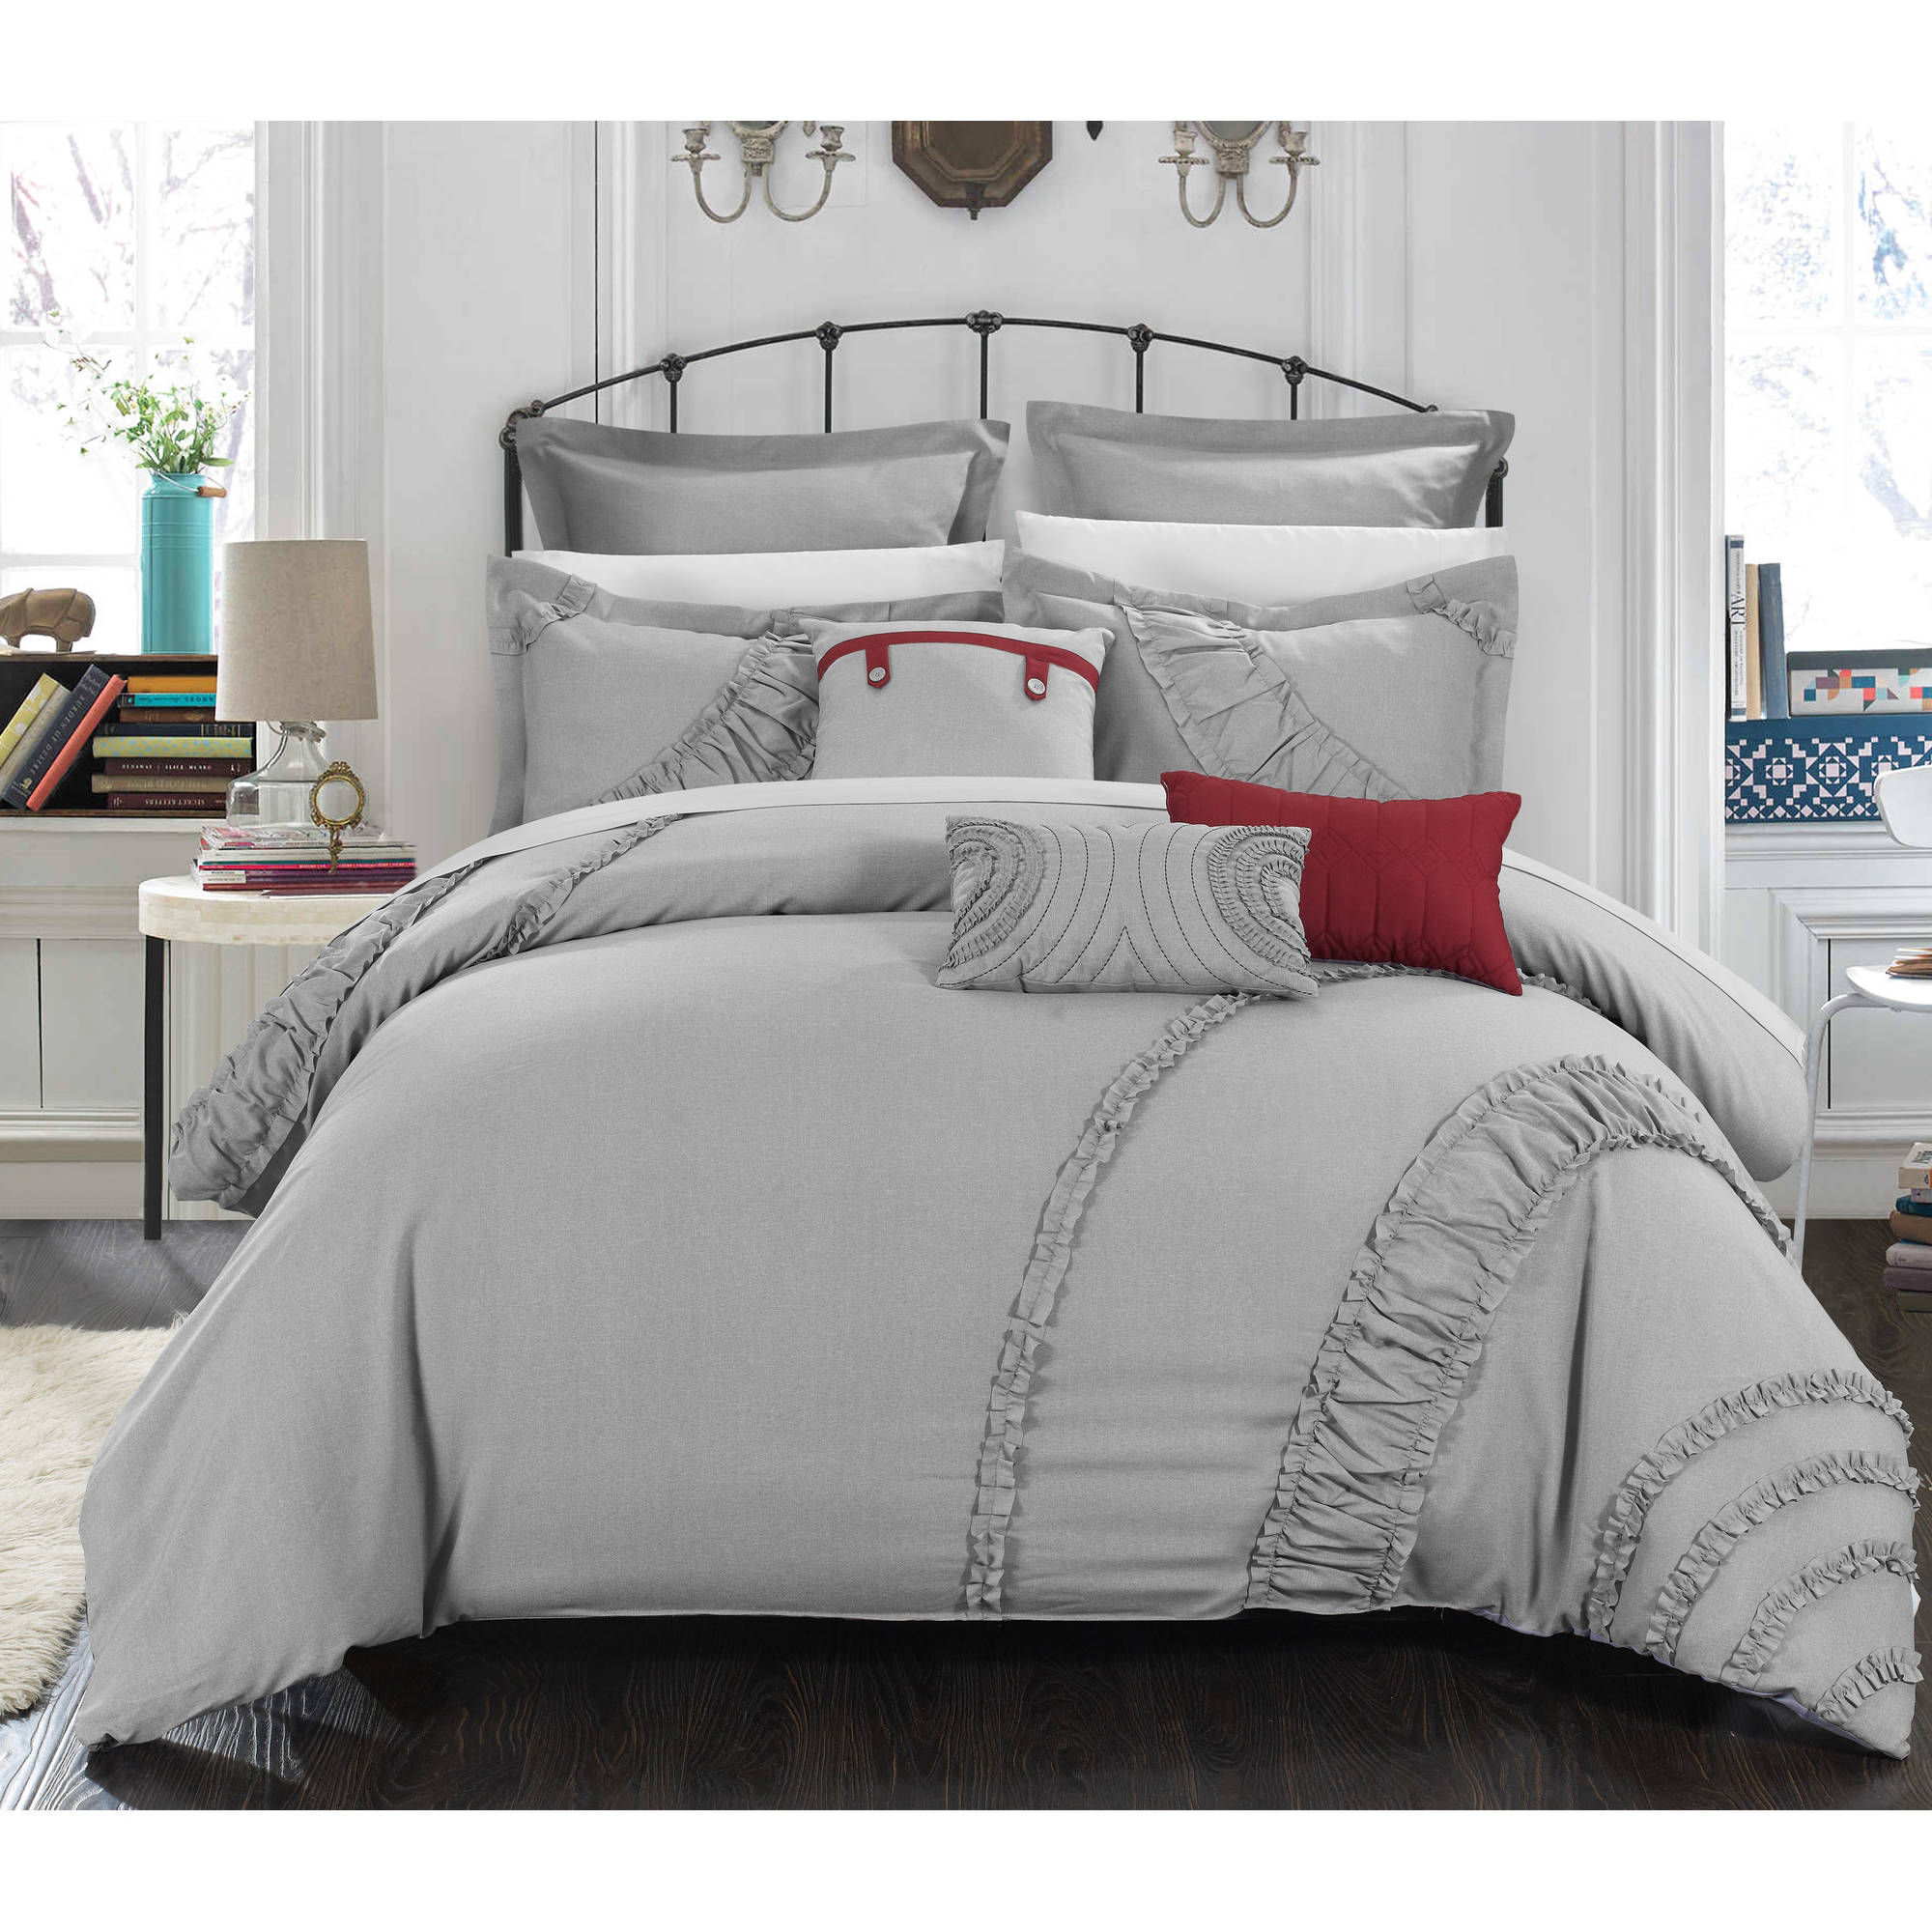 Chic Home Dearly 8-Piece Faux Linen Oversized and Overfilled Comforter Set